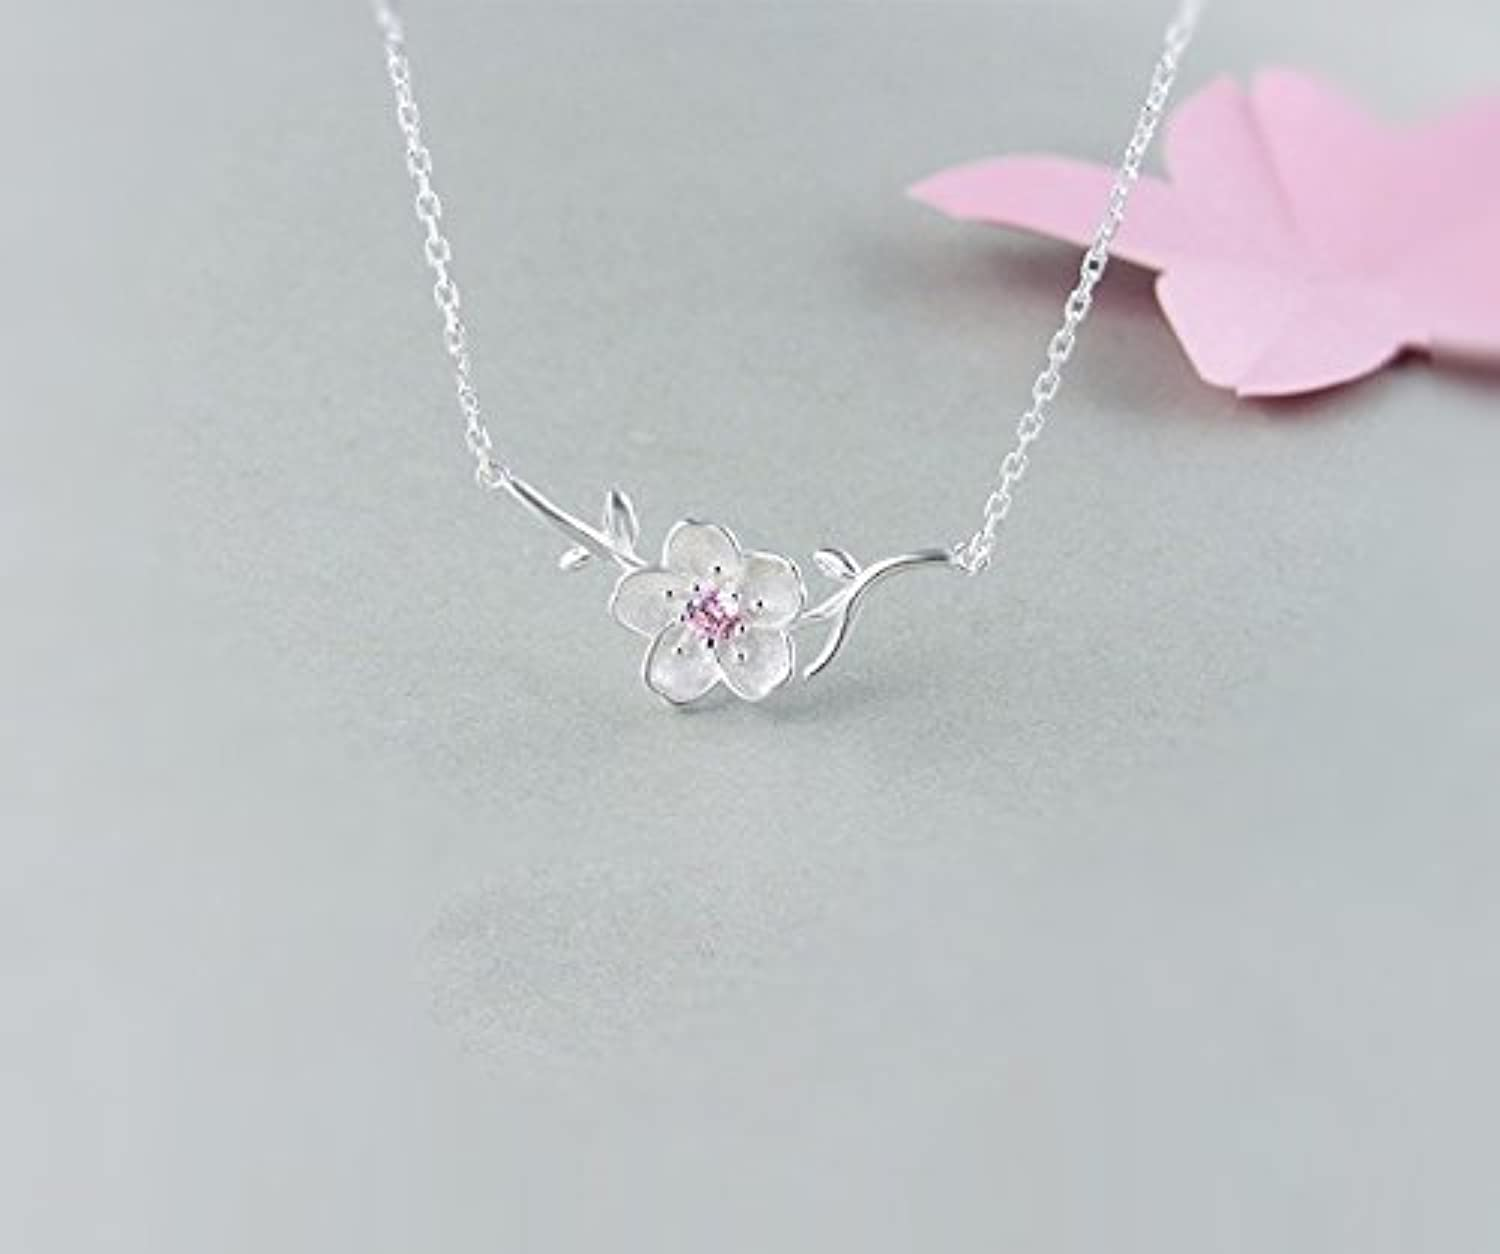 WFYJY Sterling Silver necklace pendant clavicle chain